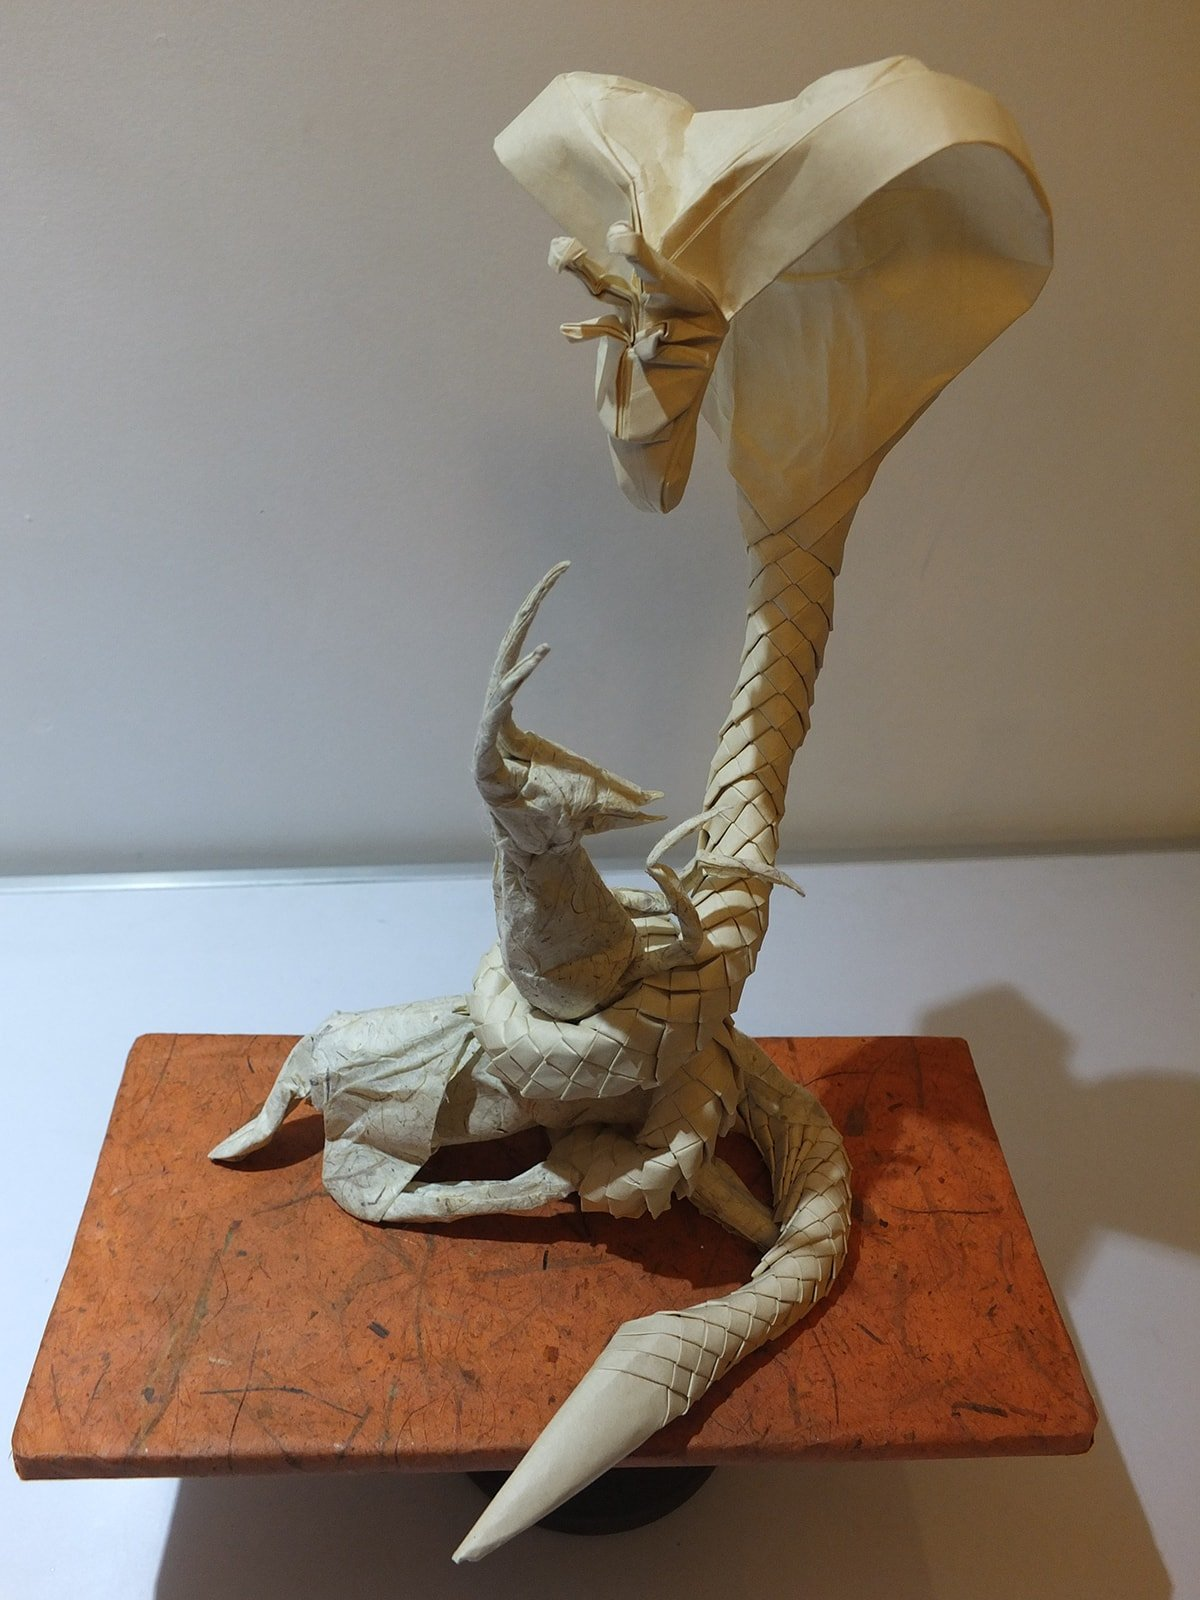 Cobrafe vs Hyenate Paper Sculpture by Eric Vigier